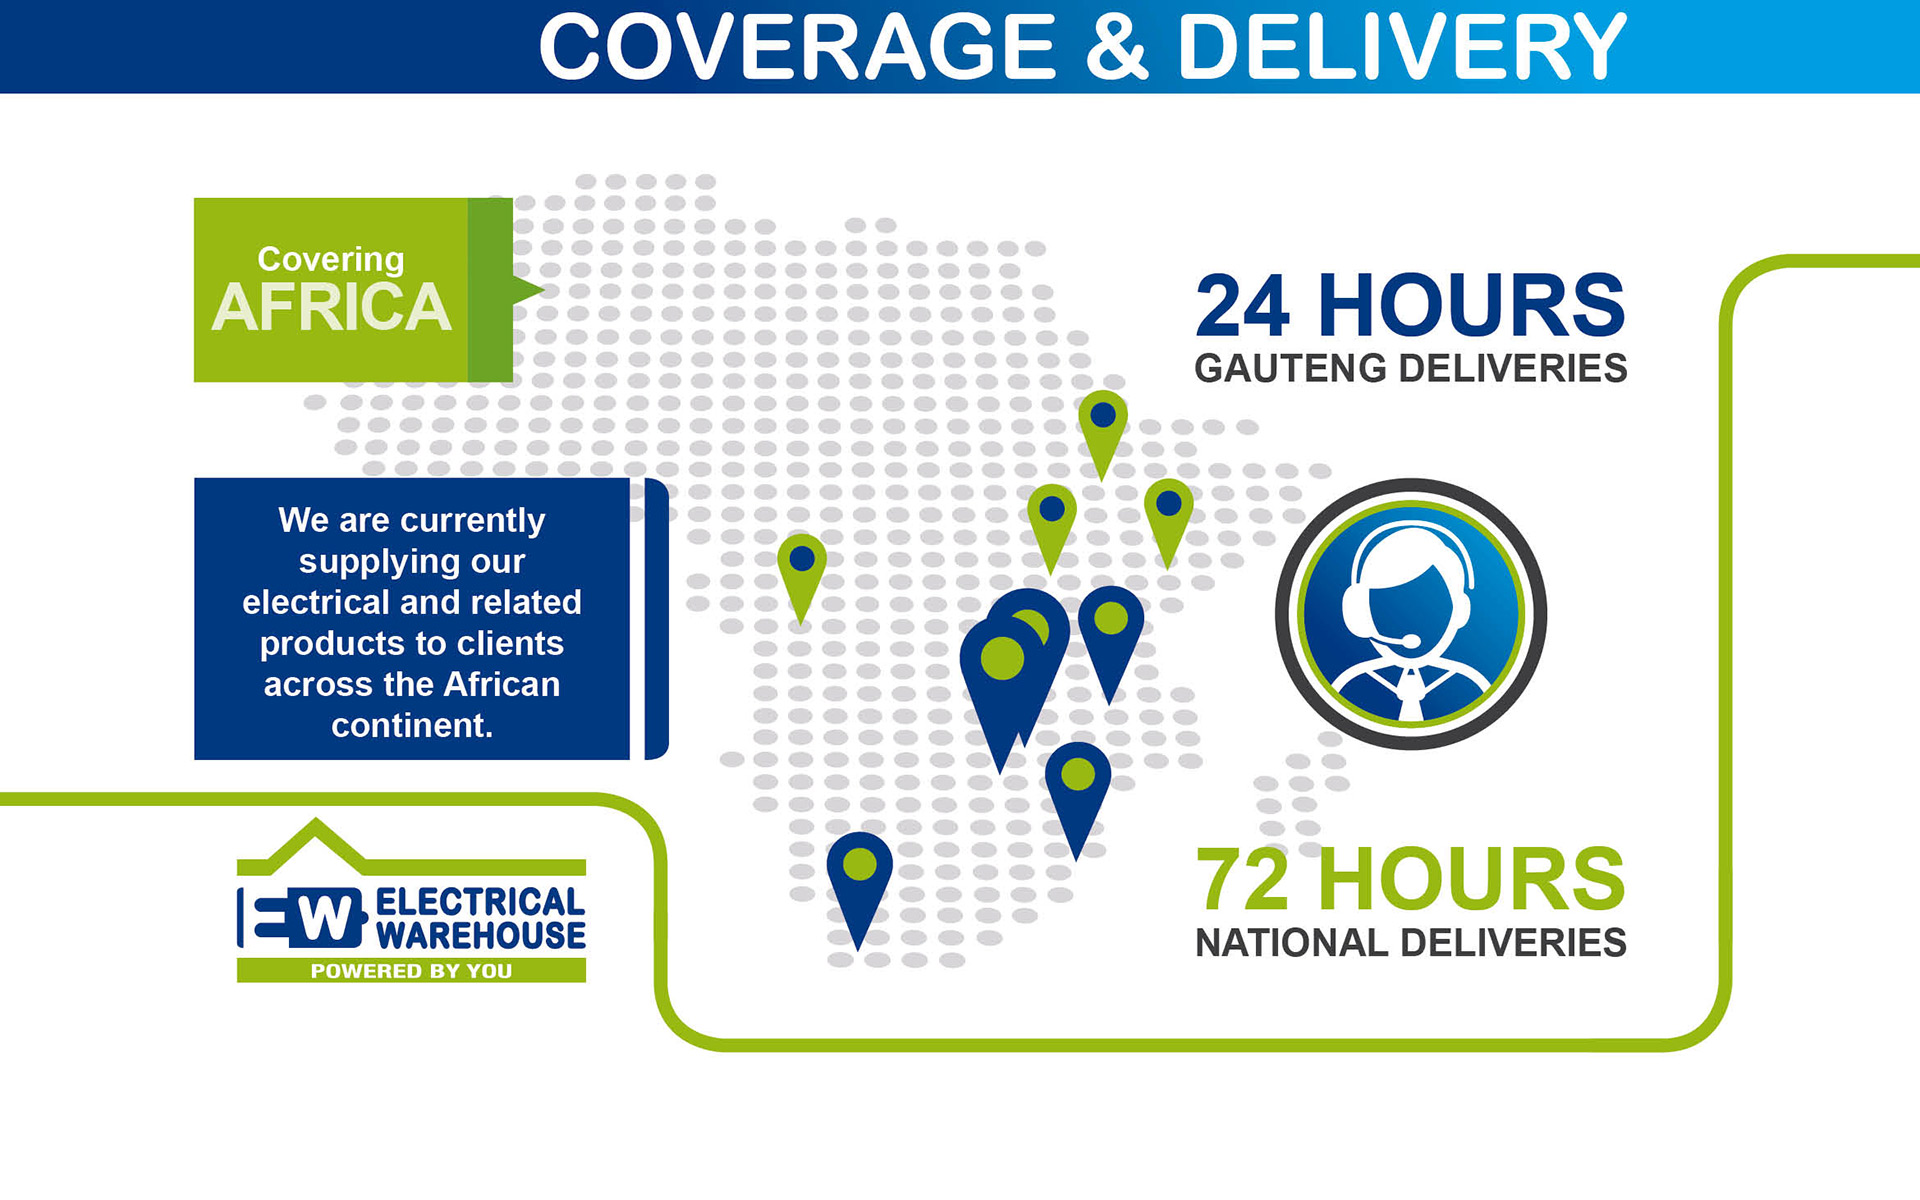 electrical-warehouse-coverage1